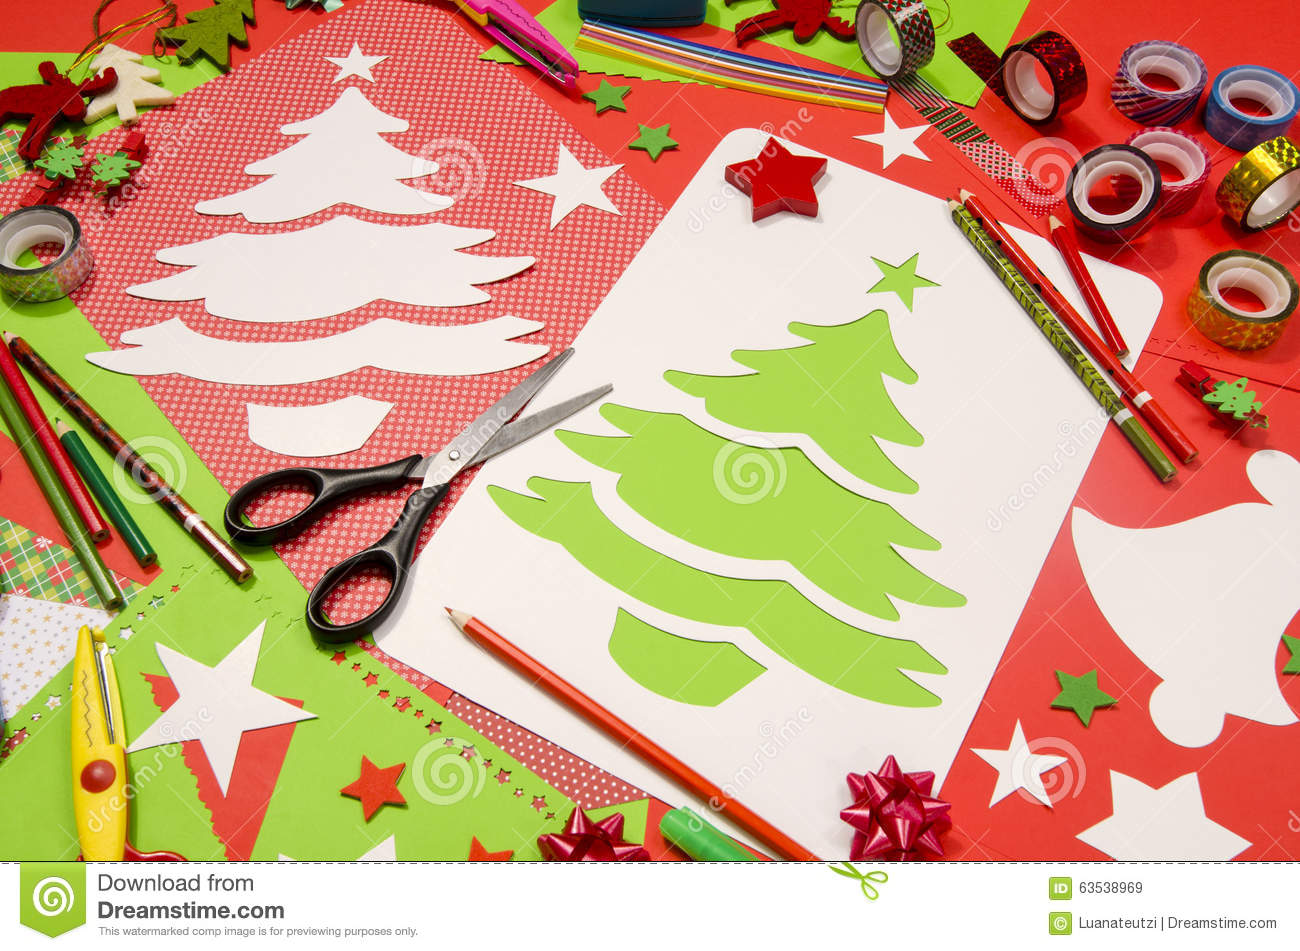 Craft Supplies Christmas Part - 21: Royalty-Free Stock Photo. Download Arts And Craft Supplies For Christmas.